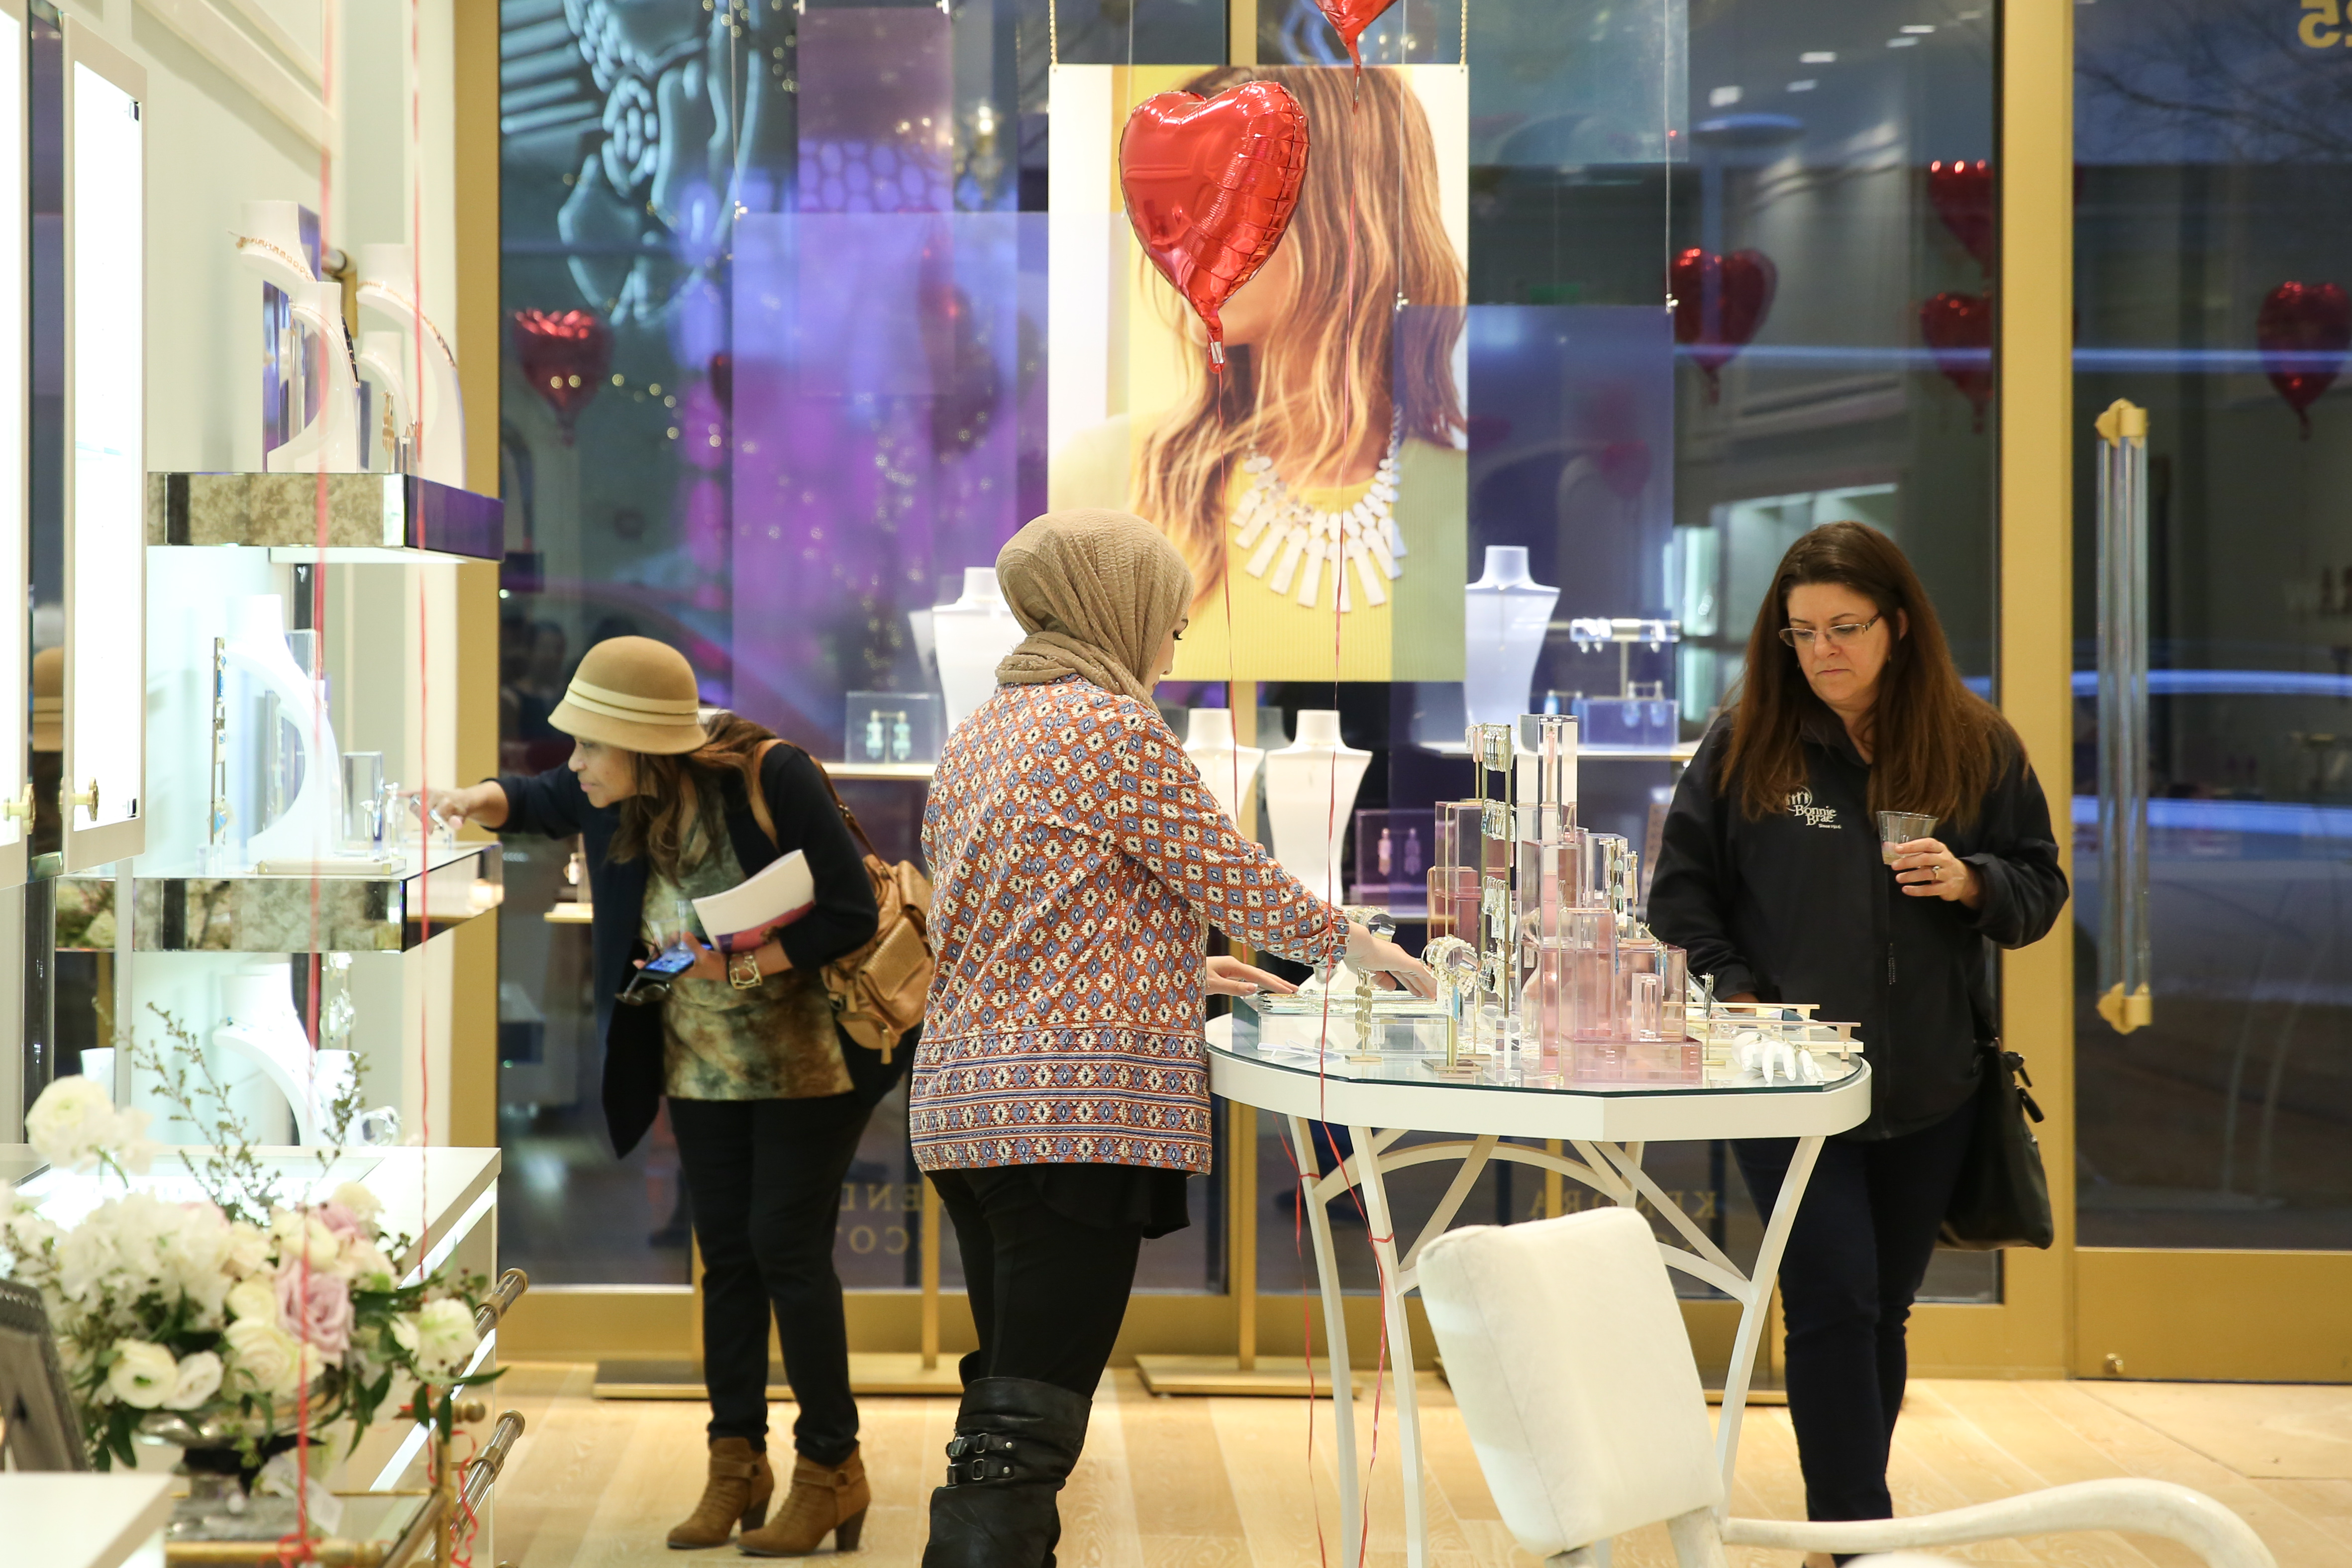 Some DC Refined fans made it to Kendra Scott in the Mosaic District for a girl's night out on Feb. 22. The evening included bubbly, browsing over gorgeous jewelry and a giveaway courtesy of Kendra Scott. (Amanda Andrade-Rhoades/DC Refined)